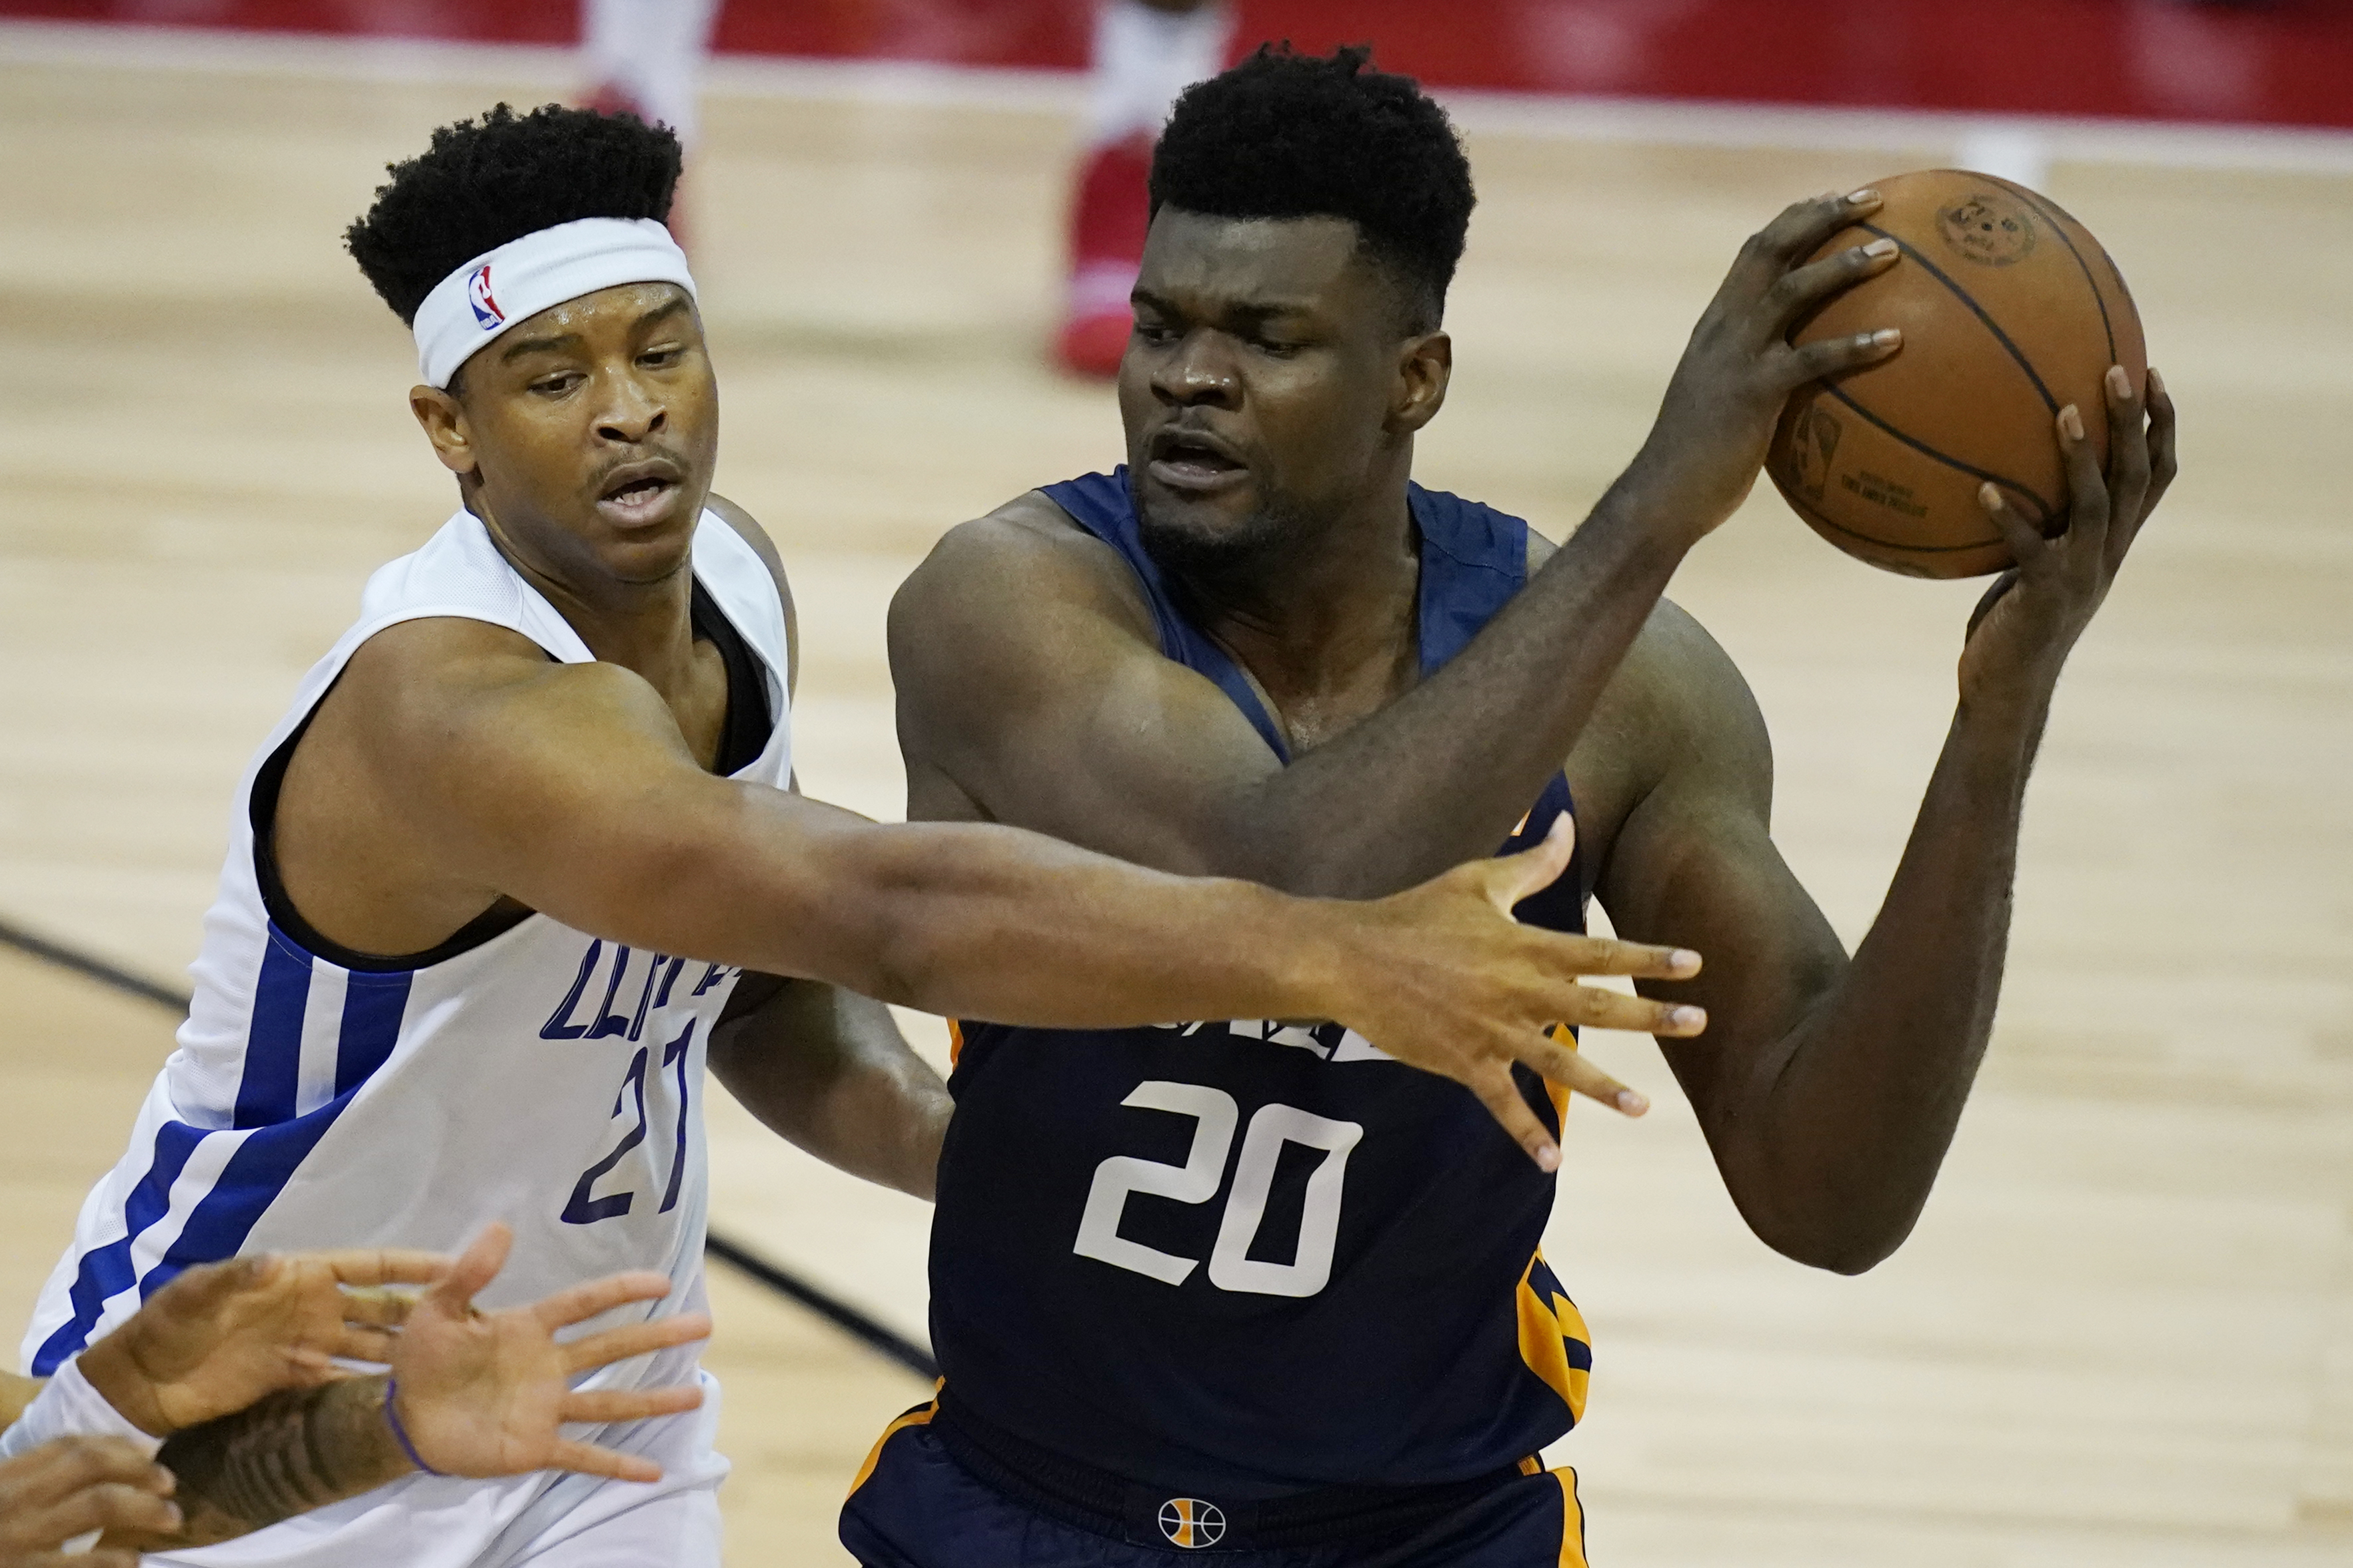 Utah Jazz's Udoka Azubuike looks to pass against Los Angeles Clippers' Isaiah Hicks during an NBA summer league game.